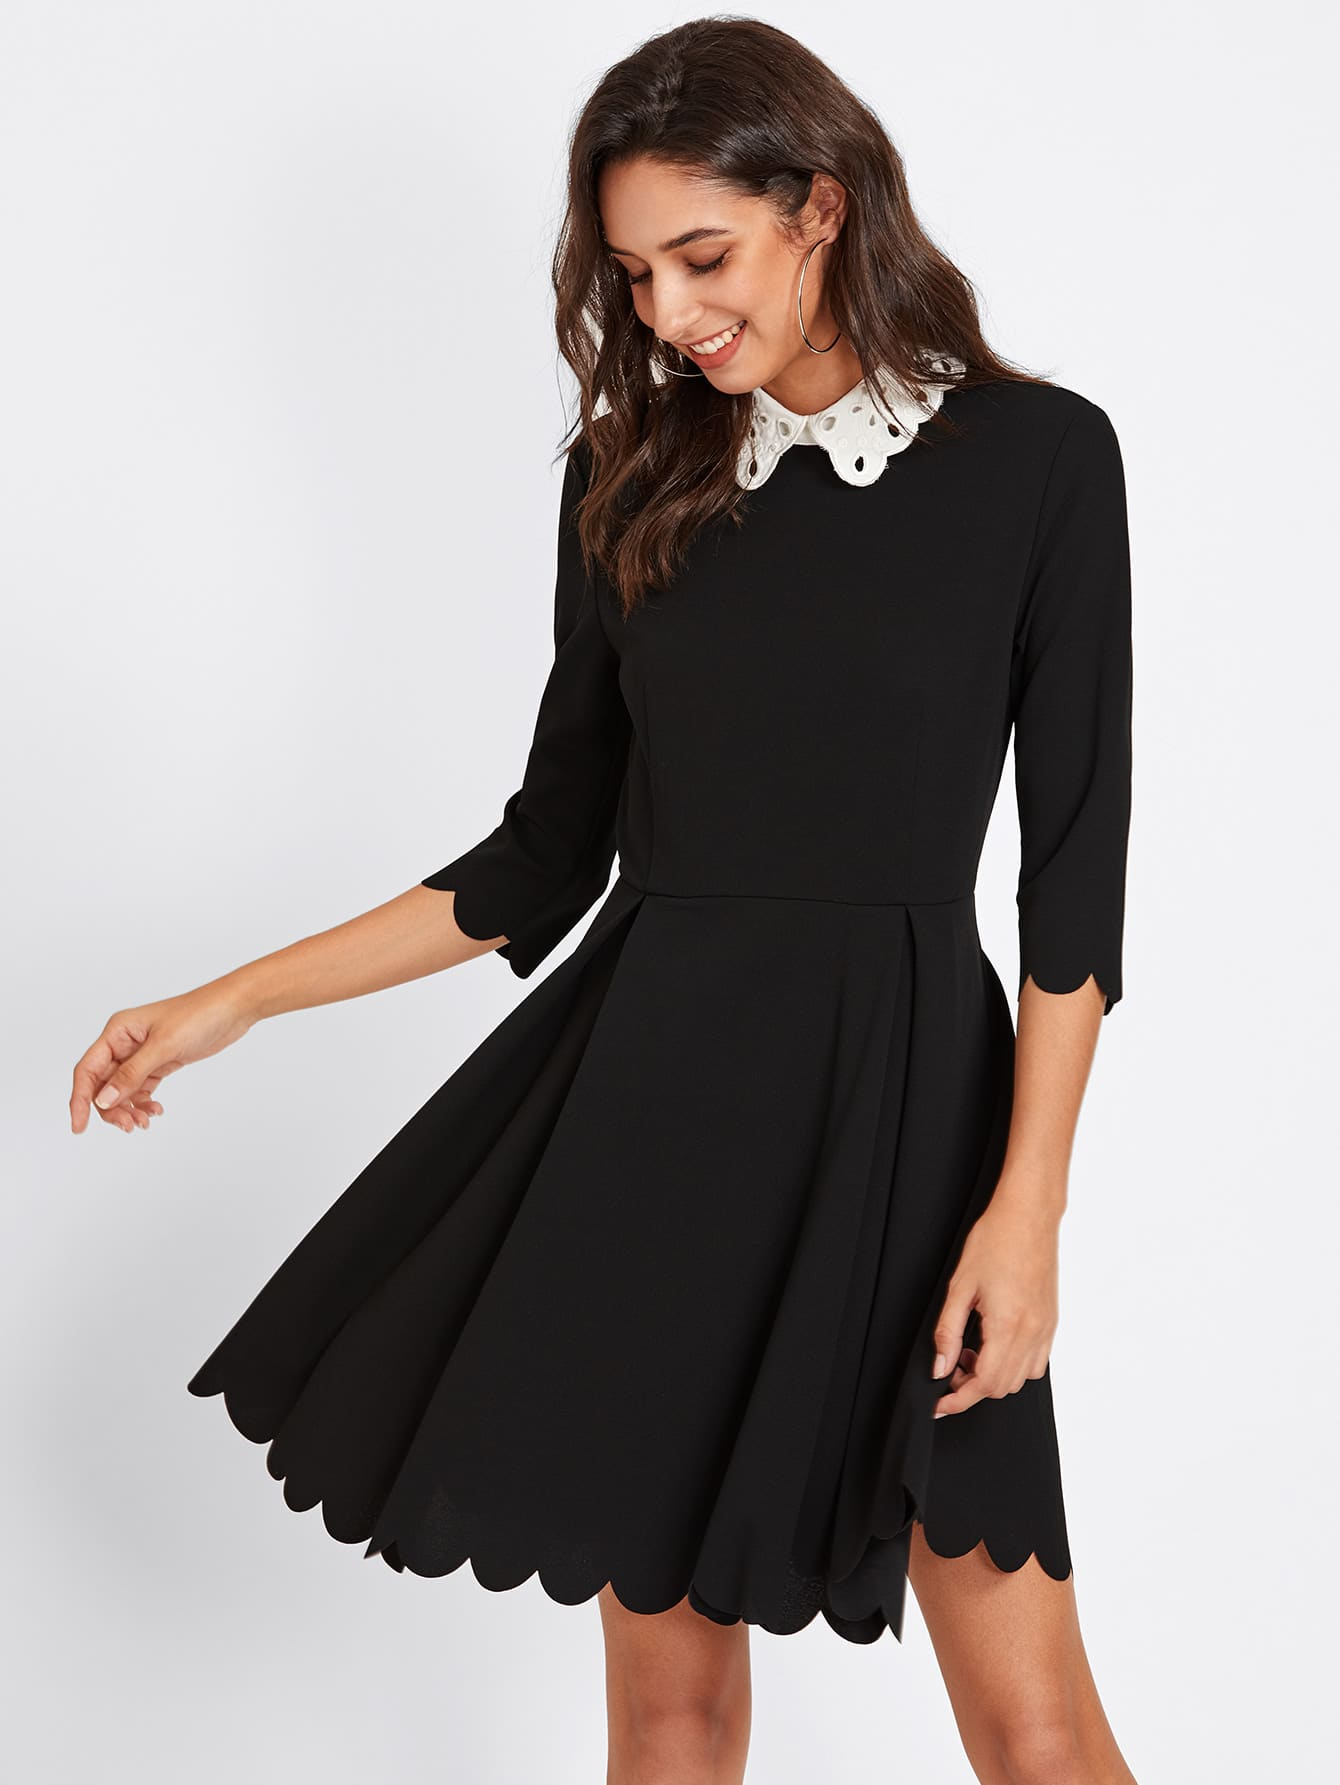 Contrast Eyelet Embroidered Collar Scalloped Dress eyelet embroidered self belted dress